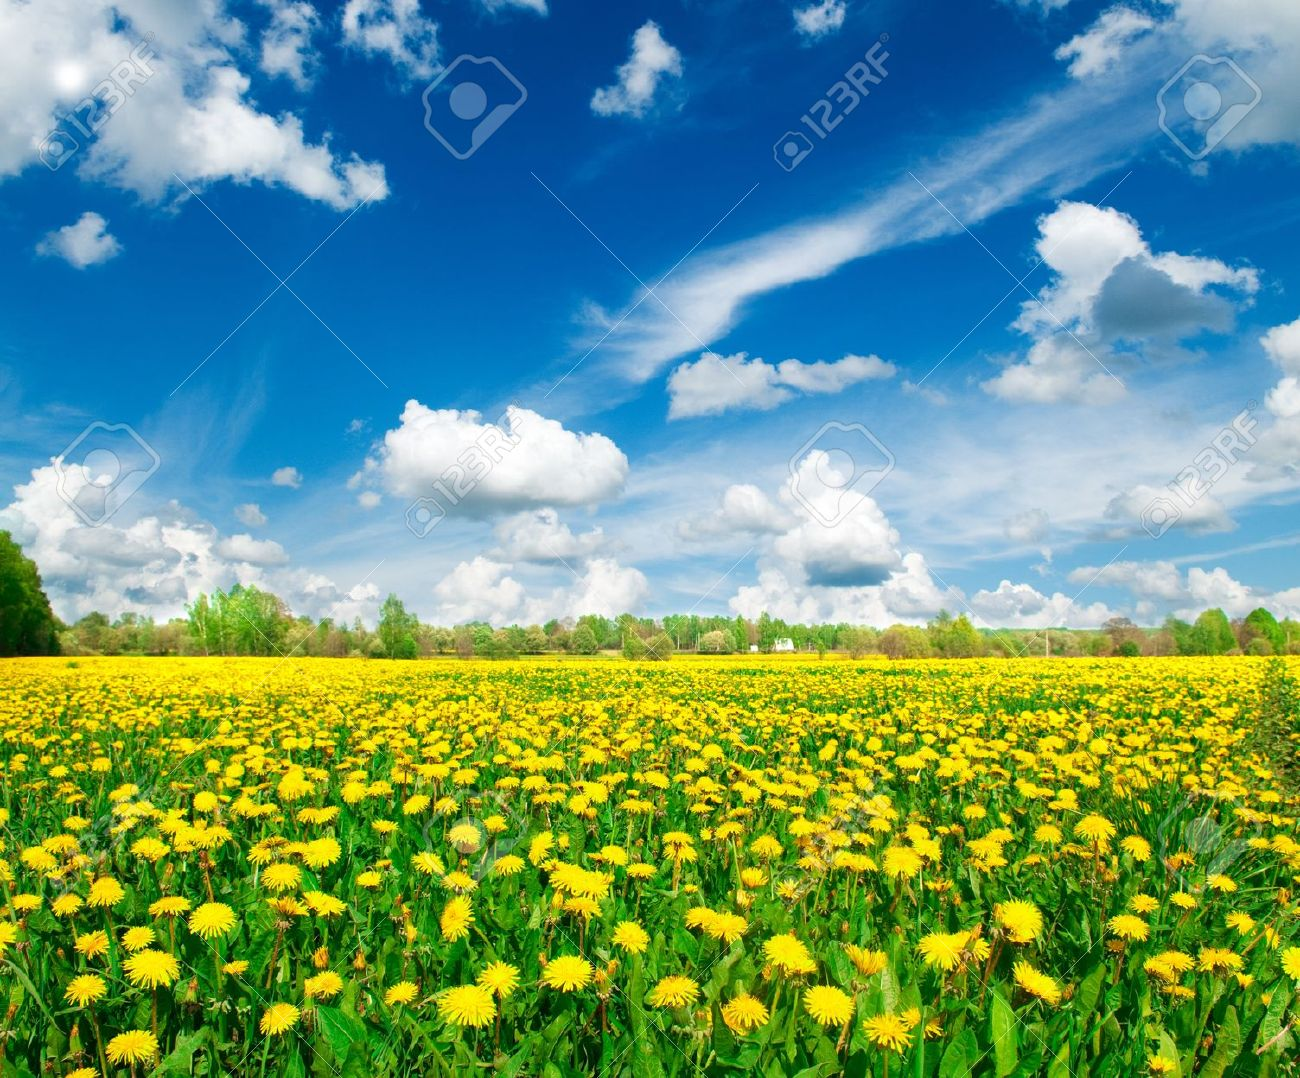 Pictures Of Yellow Flowers Landscape Djiwallpaper